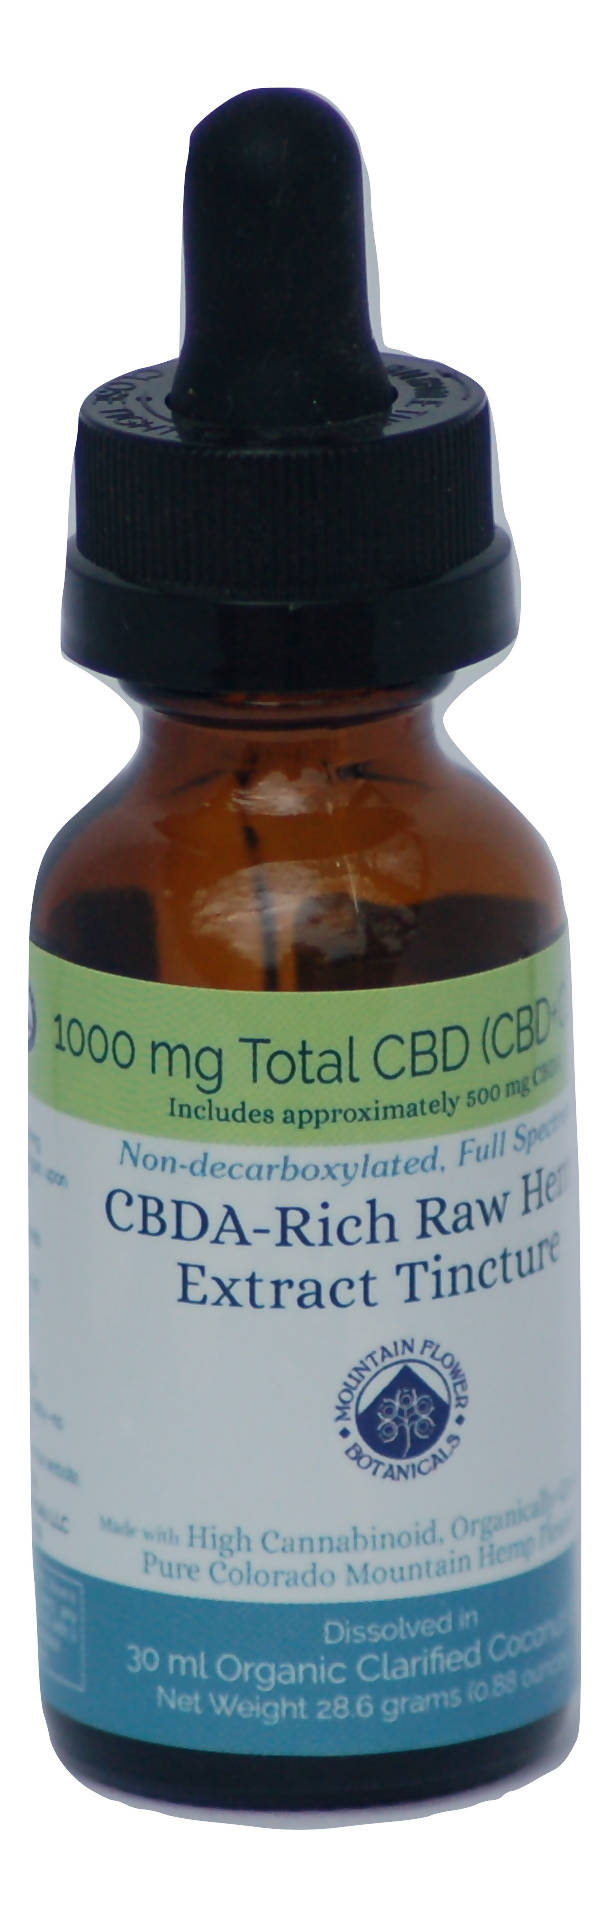 1000mg CBDA-Rich Raw Hemp Extract Tincture